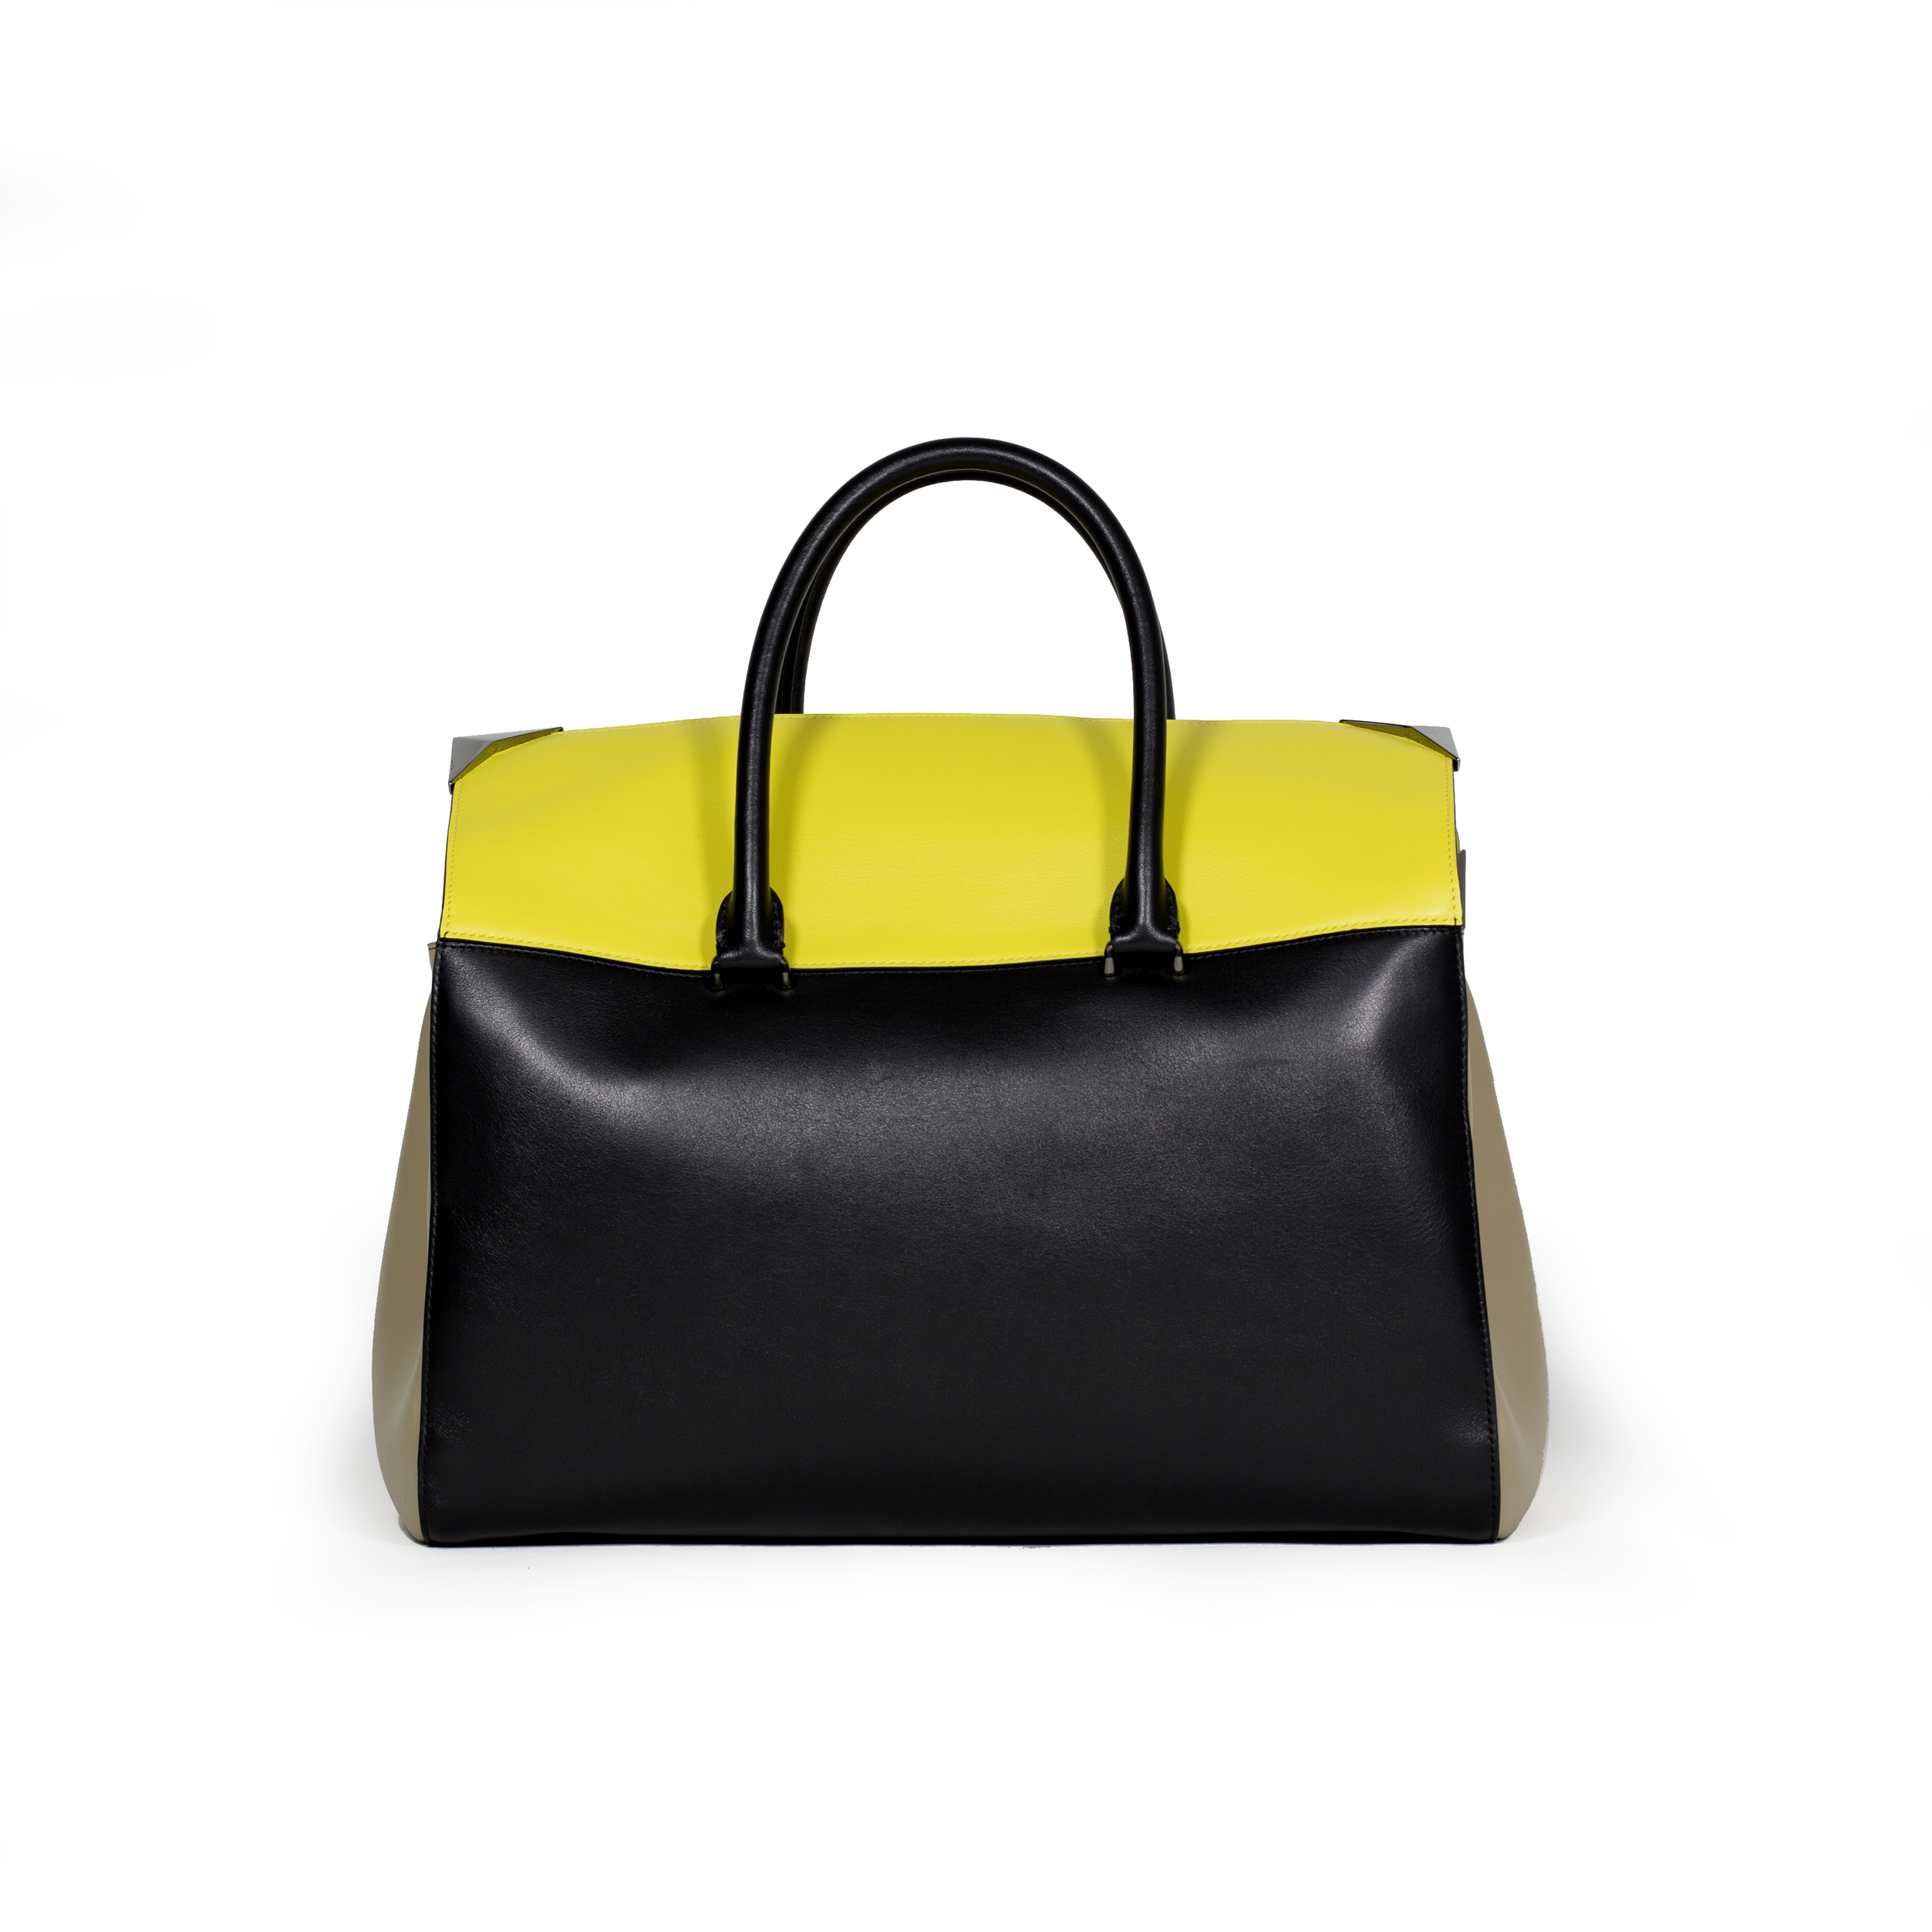 B452 VICKY G COLORBLOCK LEMON BLACK BONE.jpg